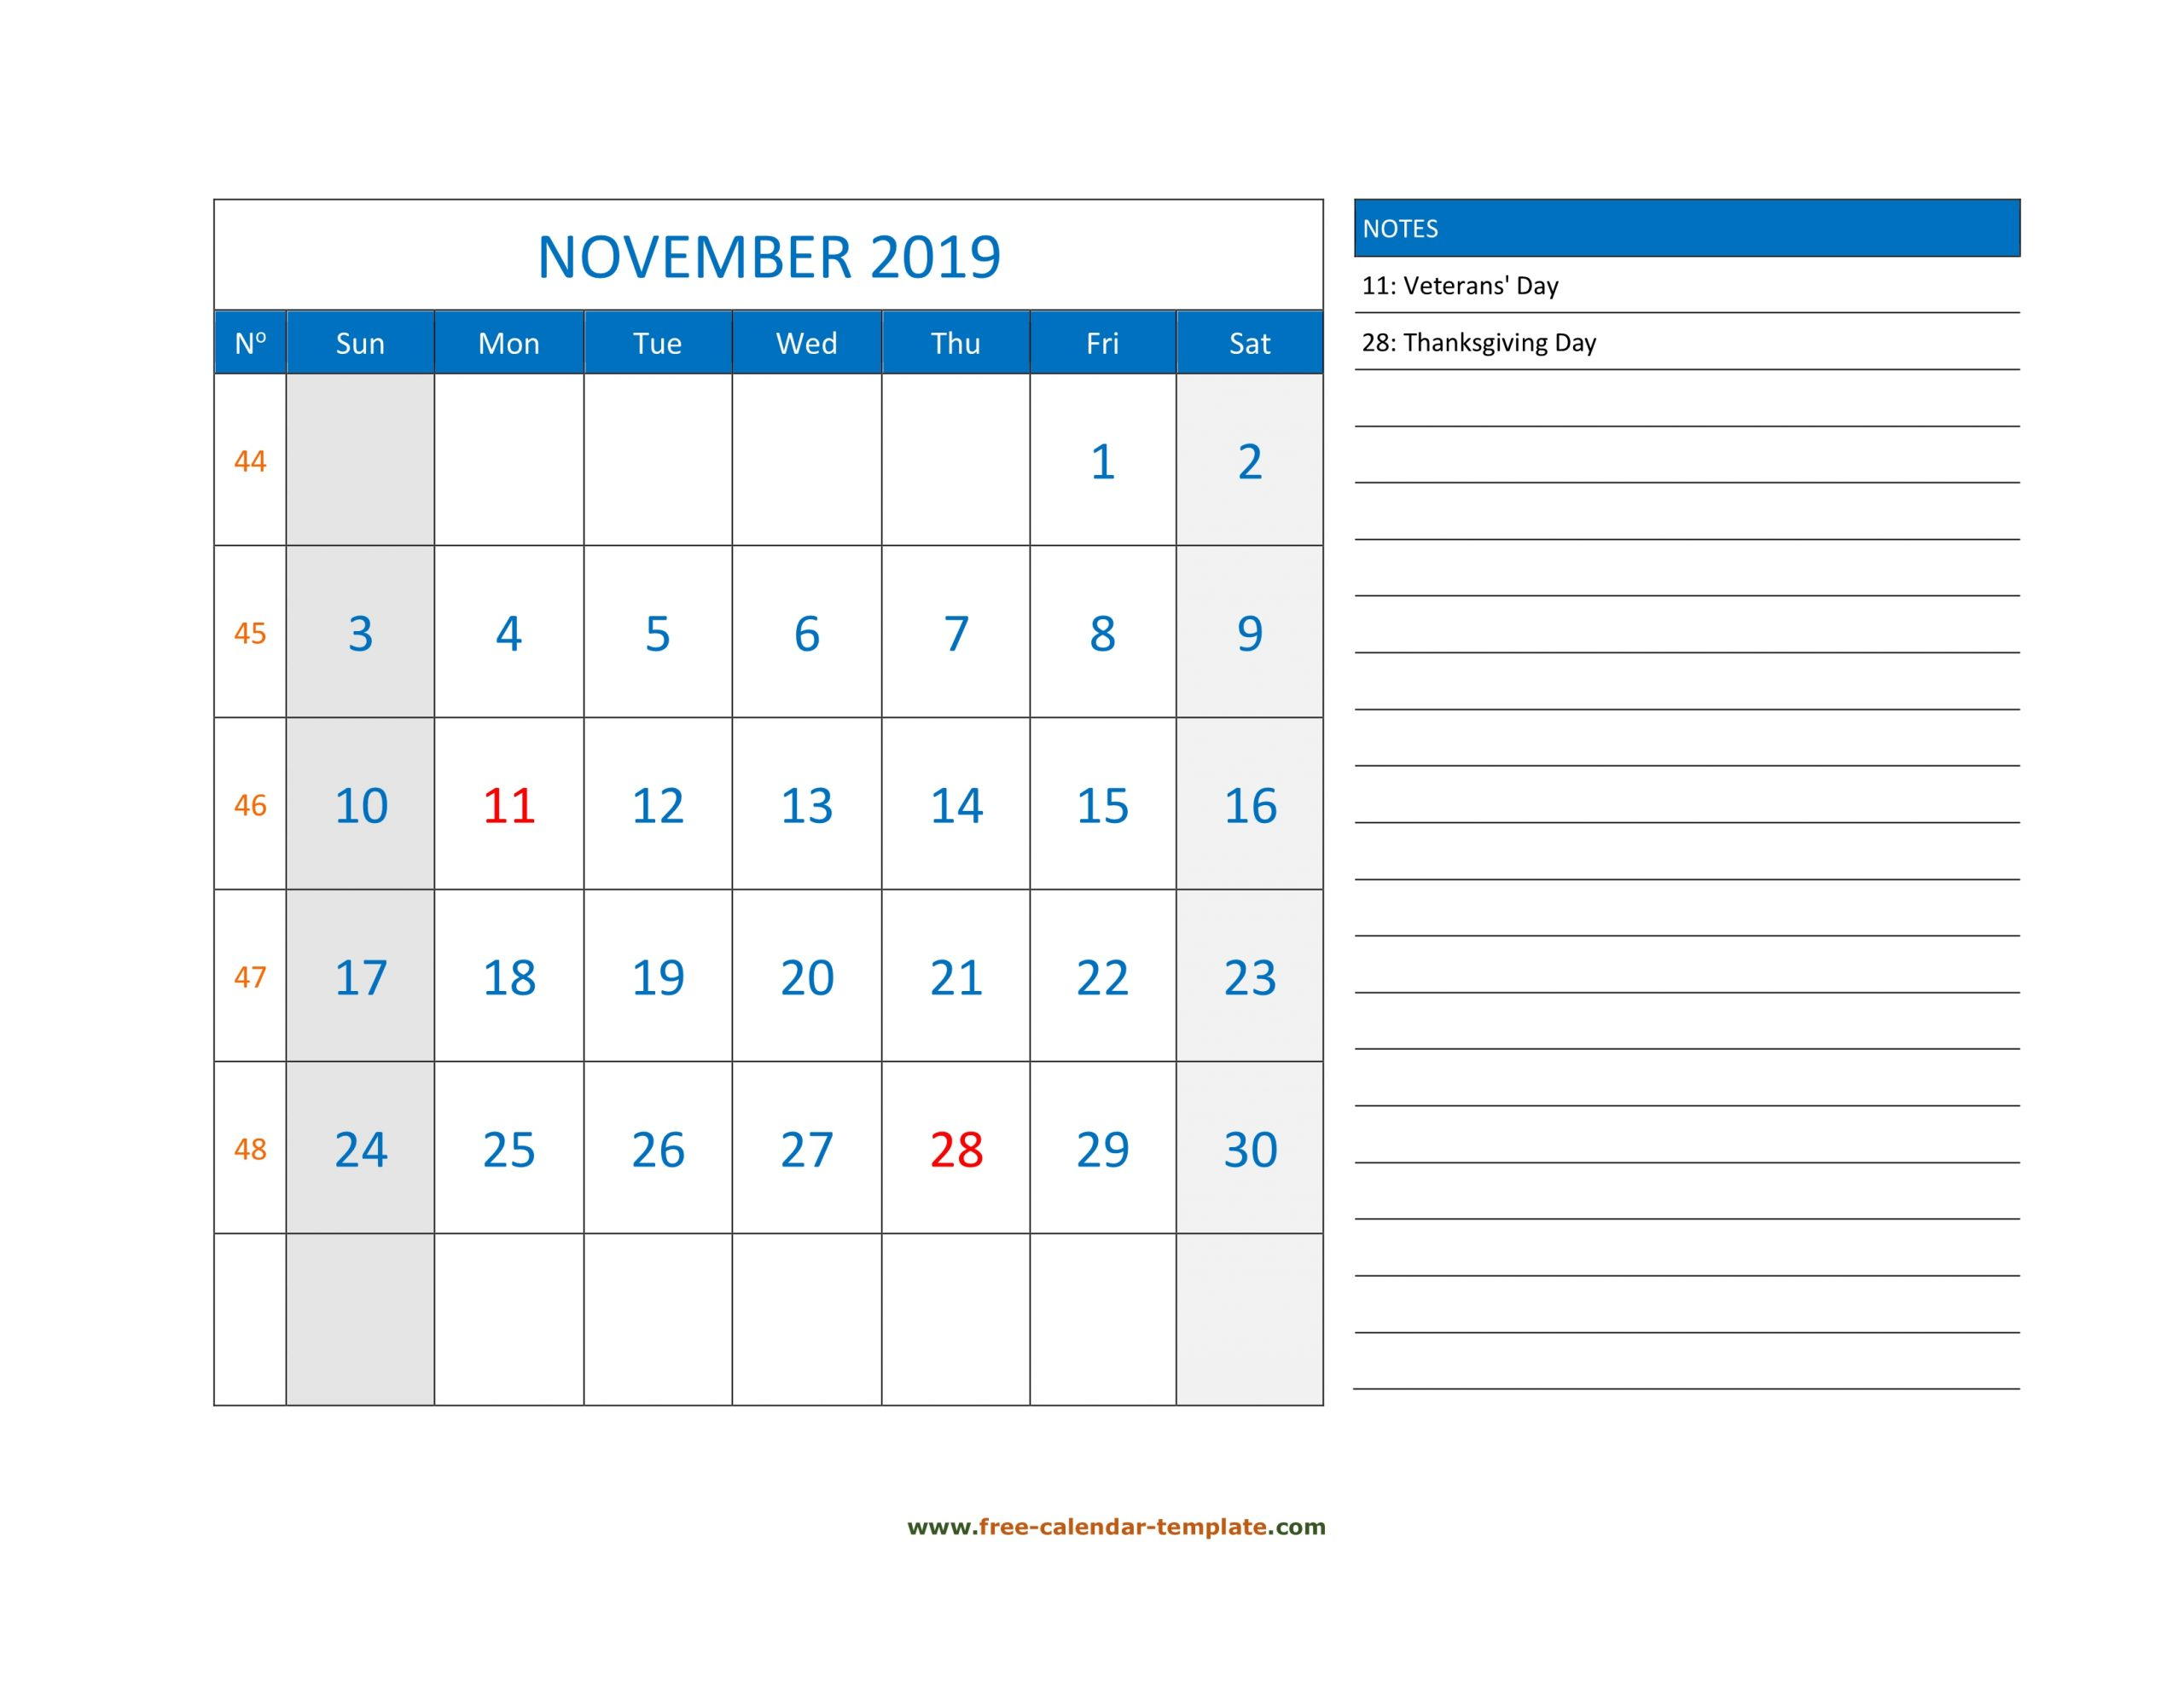 November Calendar 2019 Grid Lines For Holidays And Notes